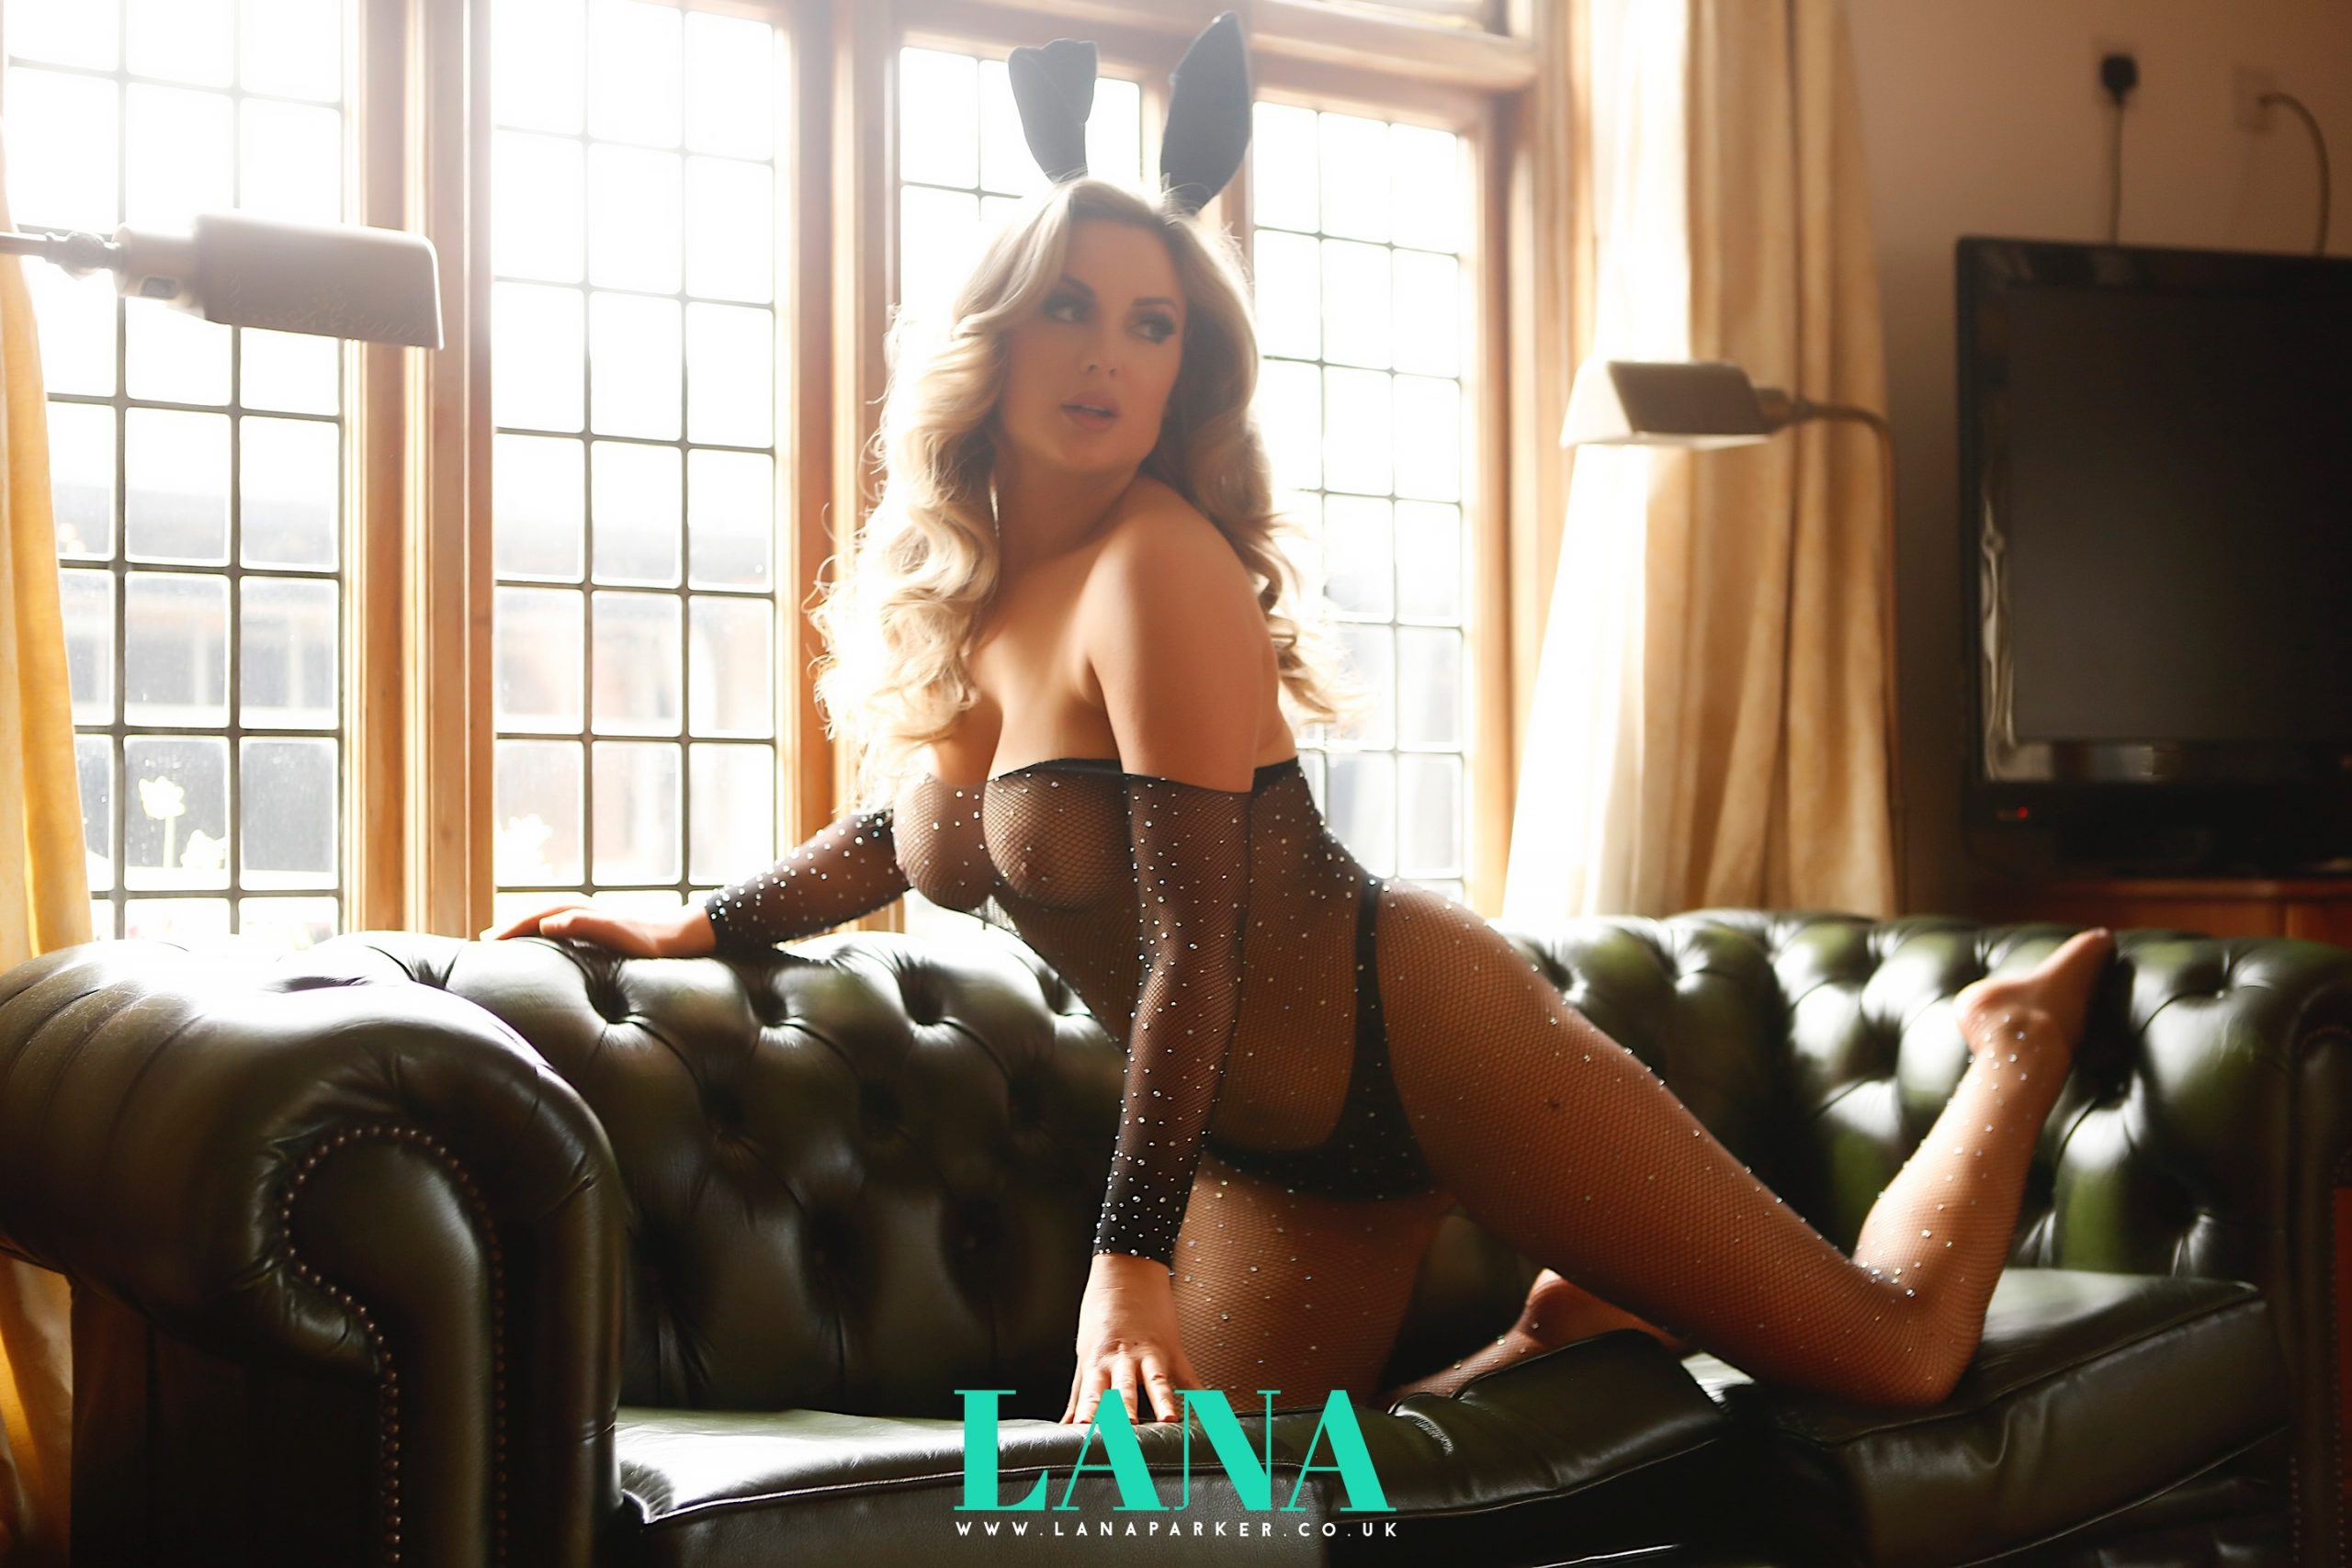 Easter Bunny – 12:54 Minutes Video